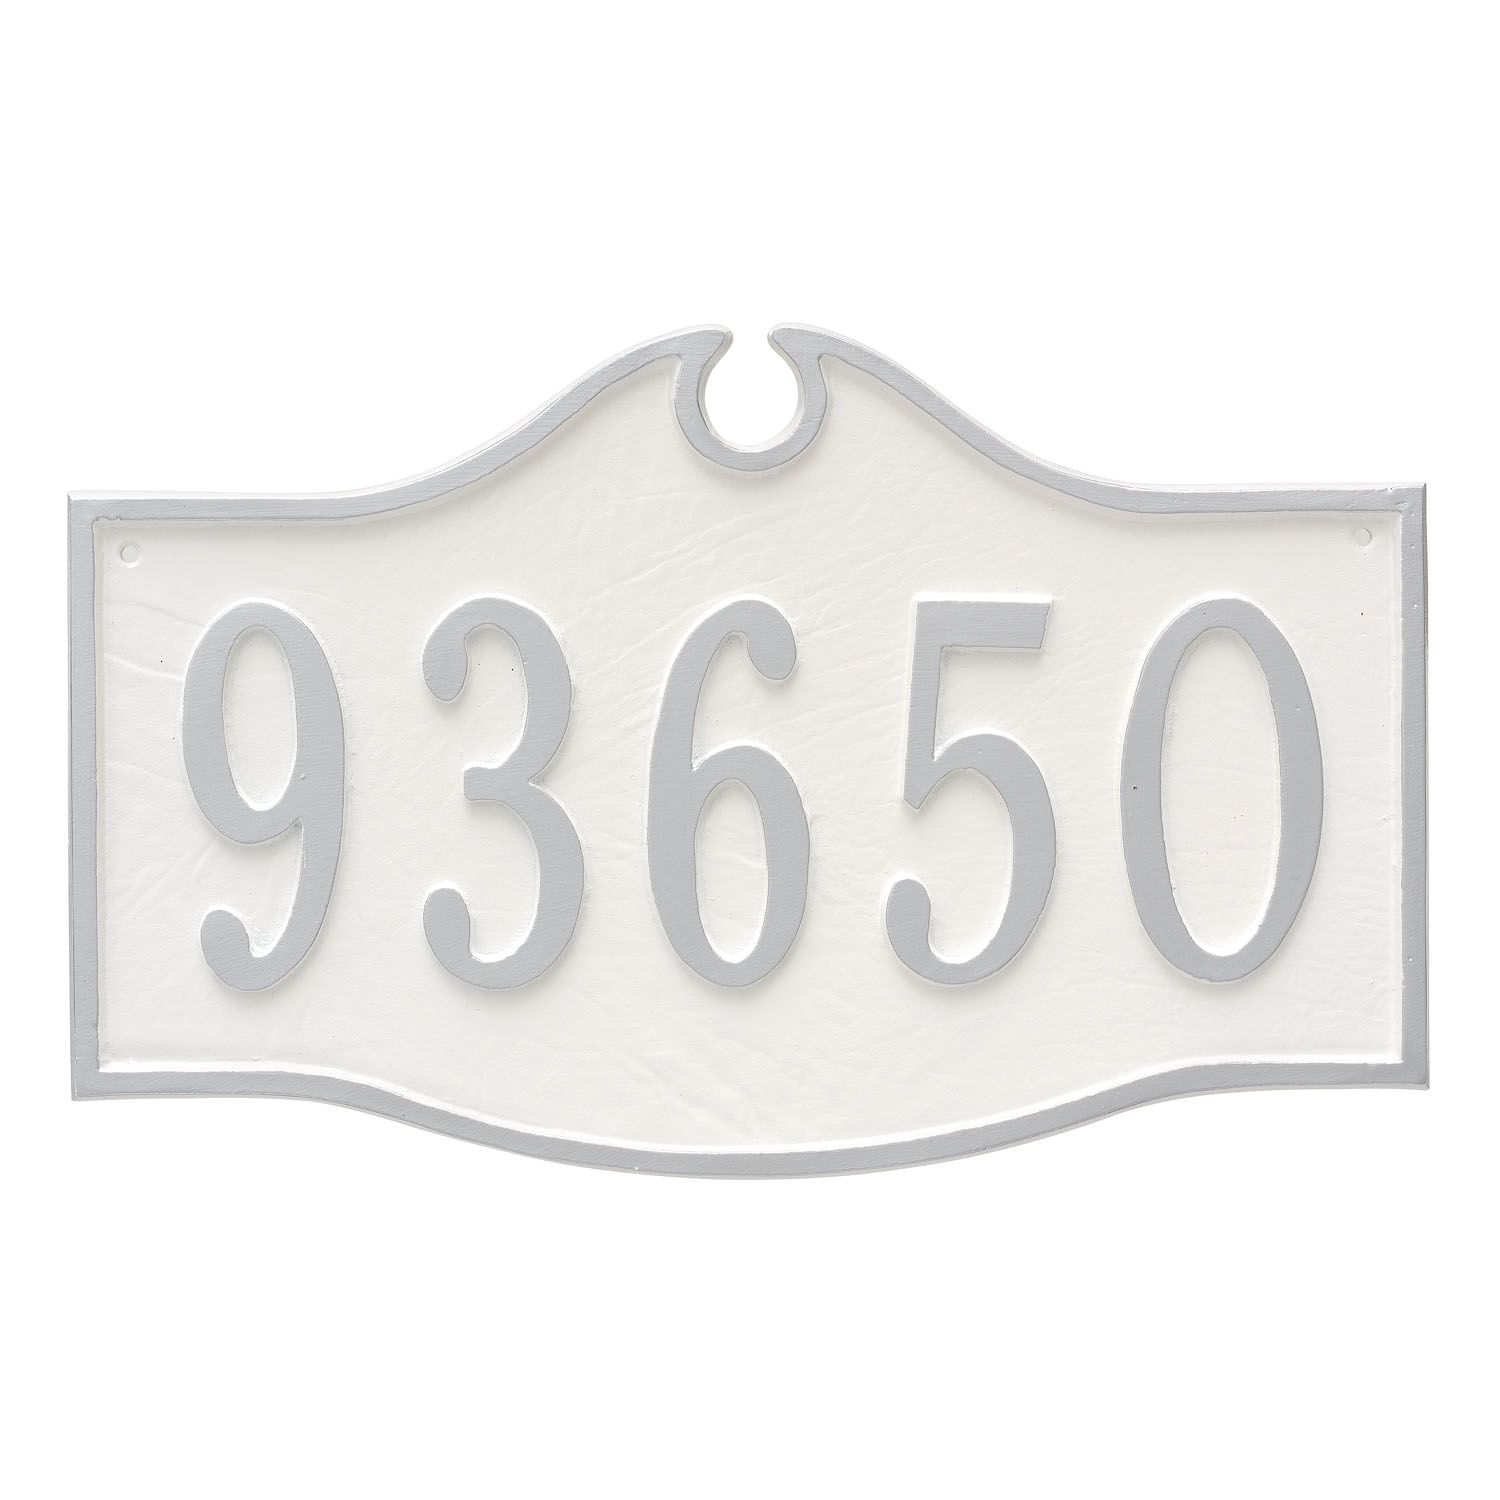 Colonial Address Plaque - Estate